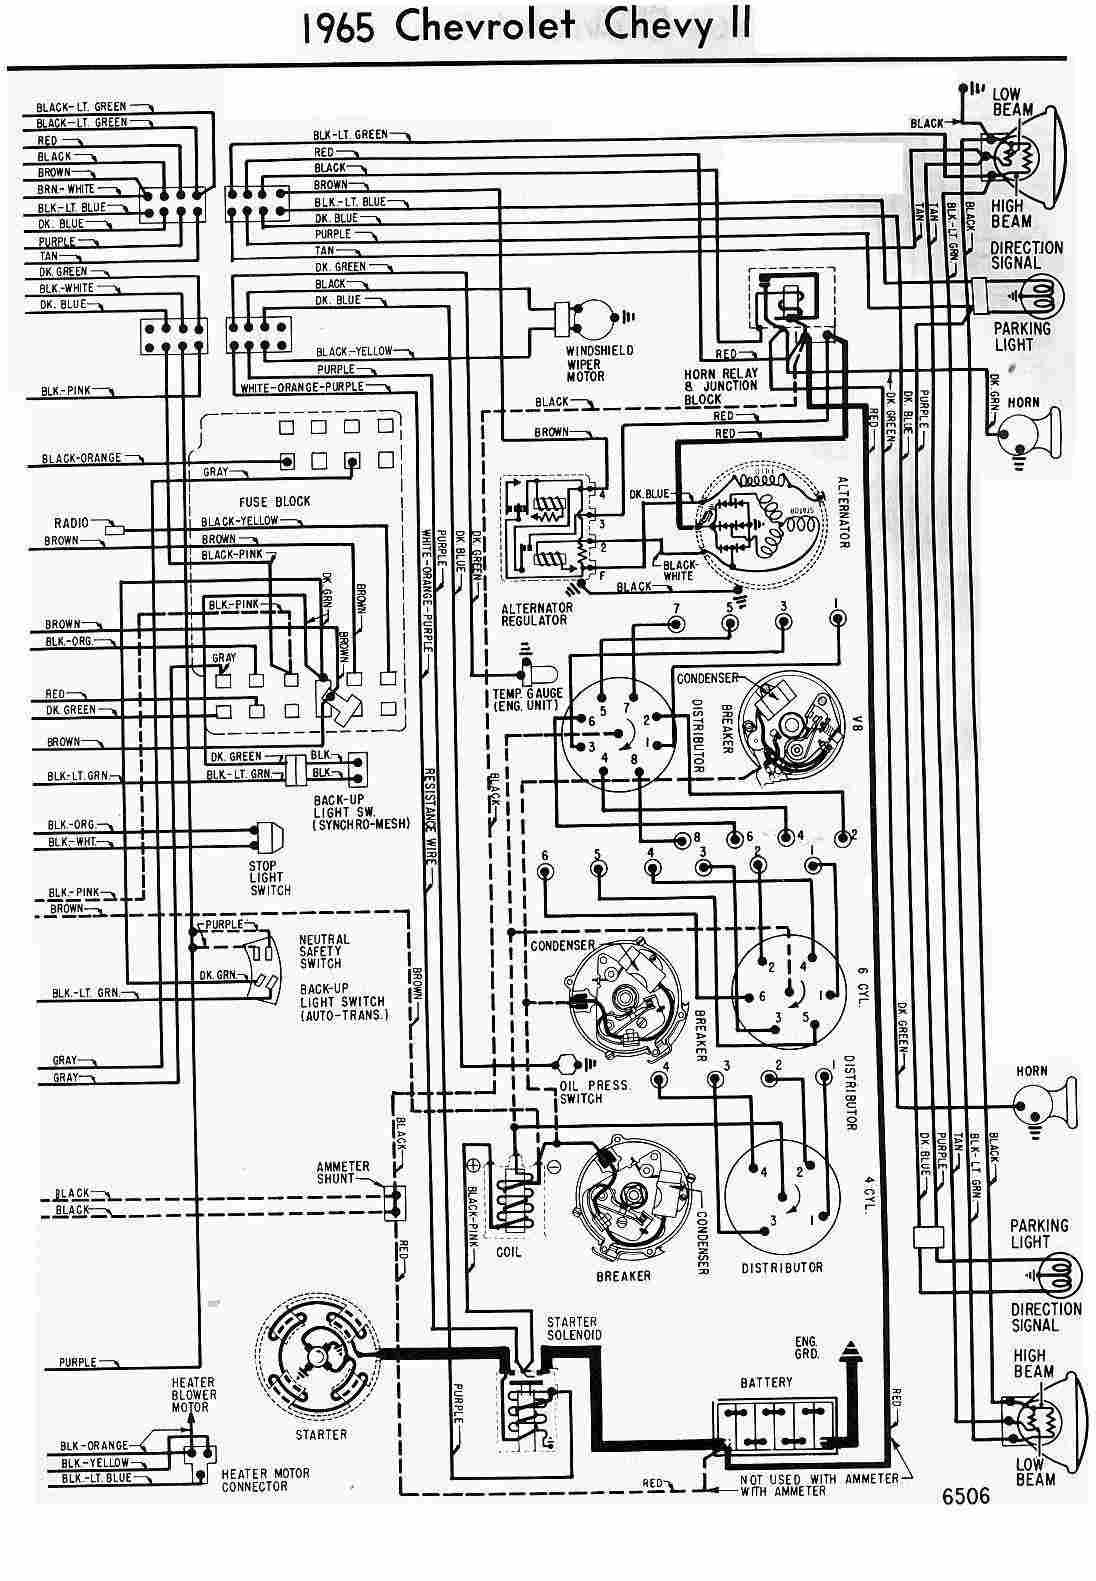 1977 Chevy Wiring Harness Diagram Libraries Corvette Diagrams 1976 Dash Schematic Simple Diagramswiring 1964